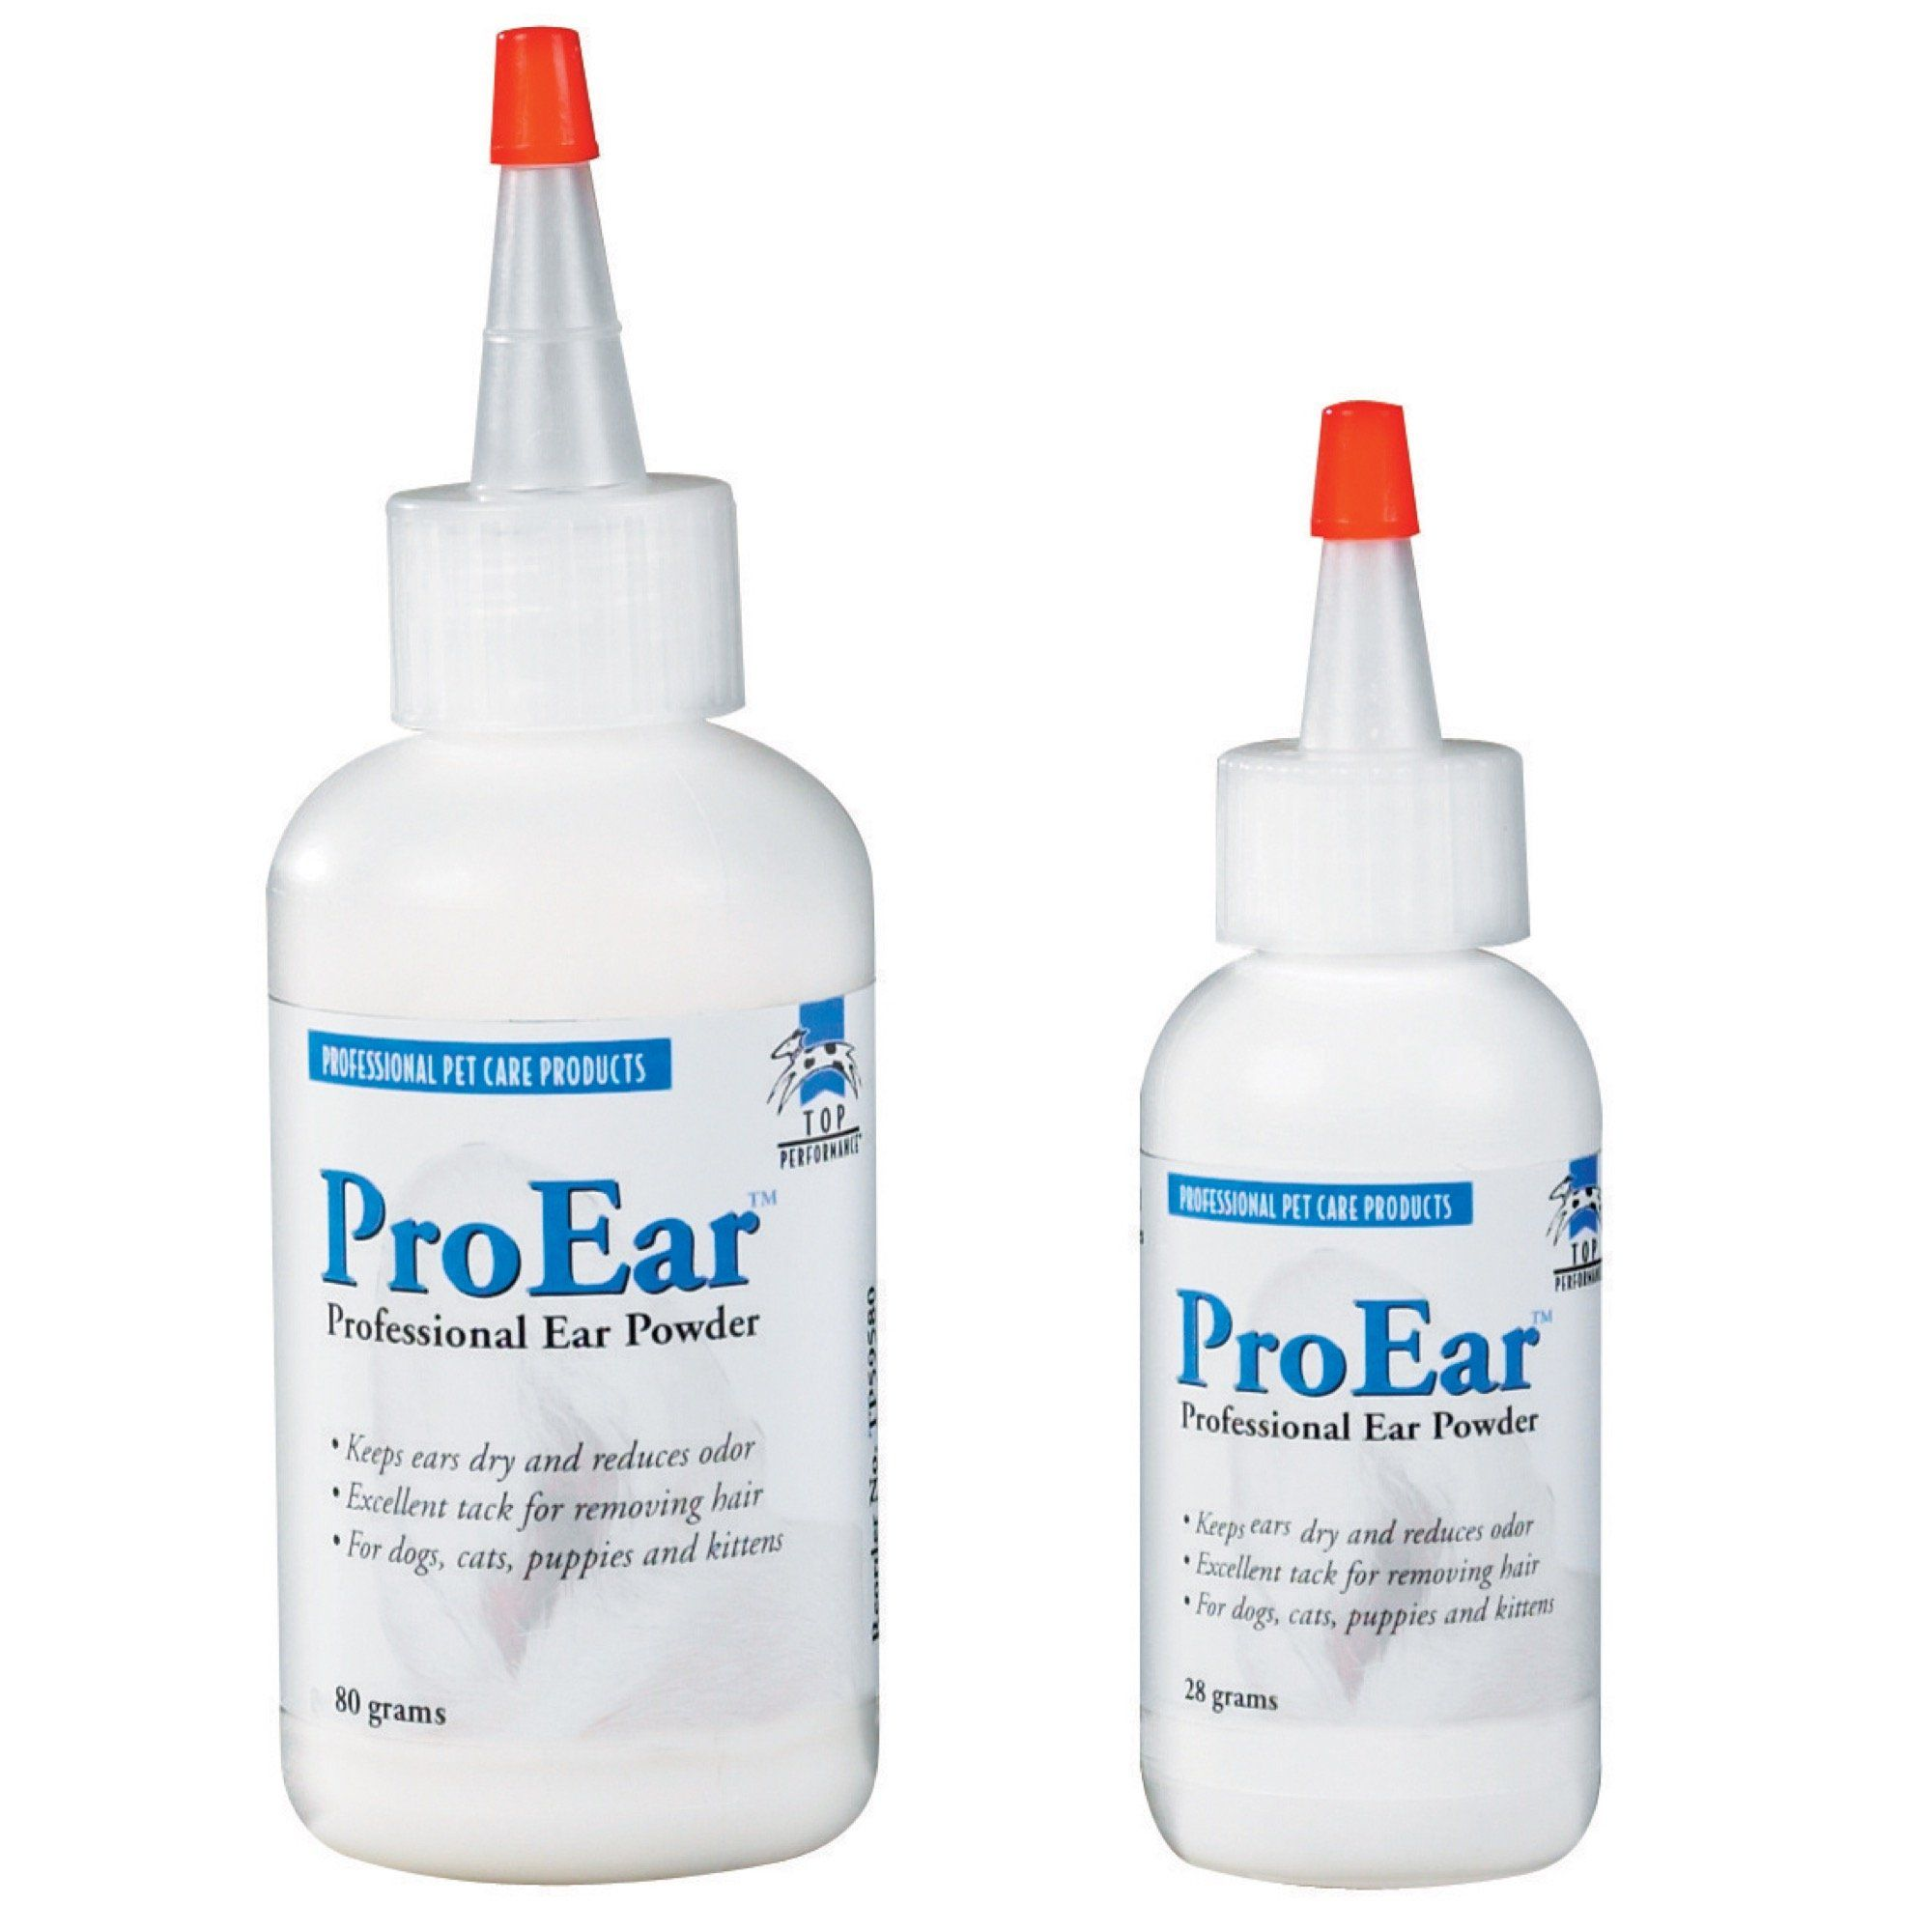 Top Performance Proear Professional Ear Powde Check Out The Image By Visiting The Link This Is An Affiliate Link C Dog Cleaning Dog Spray Shampoo Powder